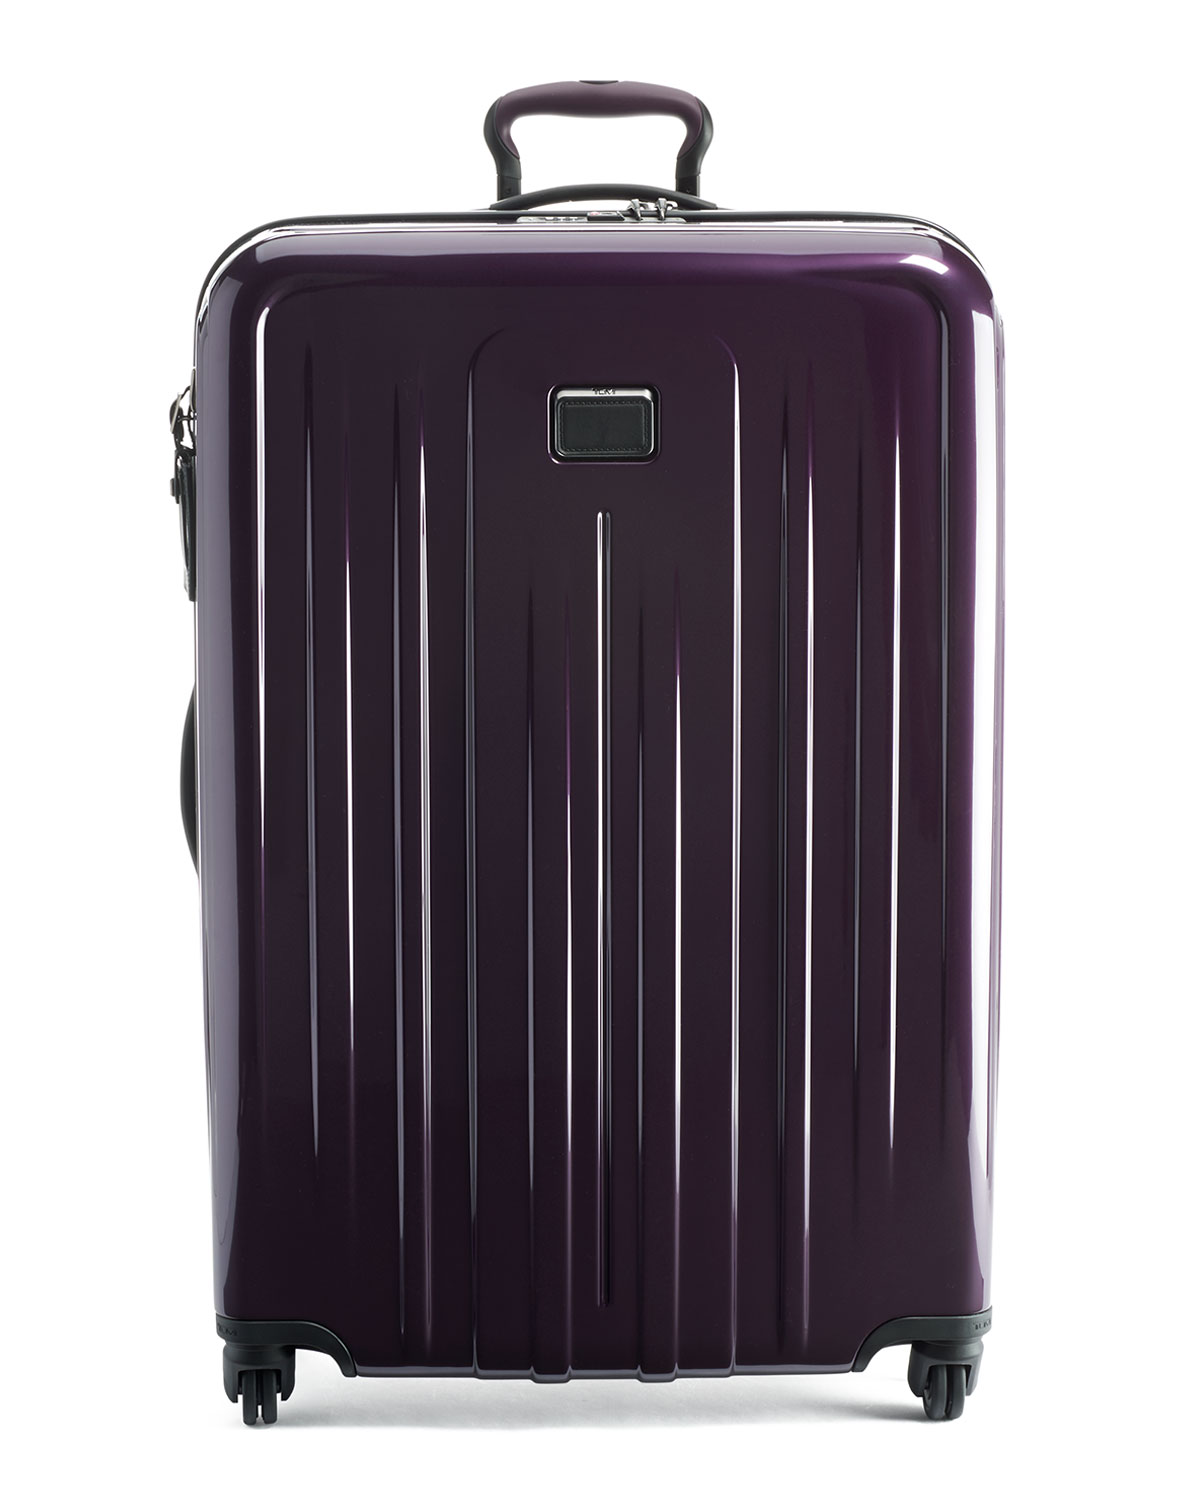 TUMI V4 Extended Trip Expandable 4 Wheel Luggage